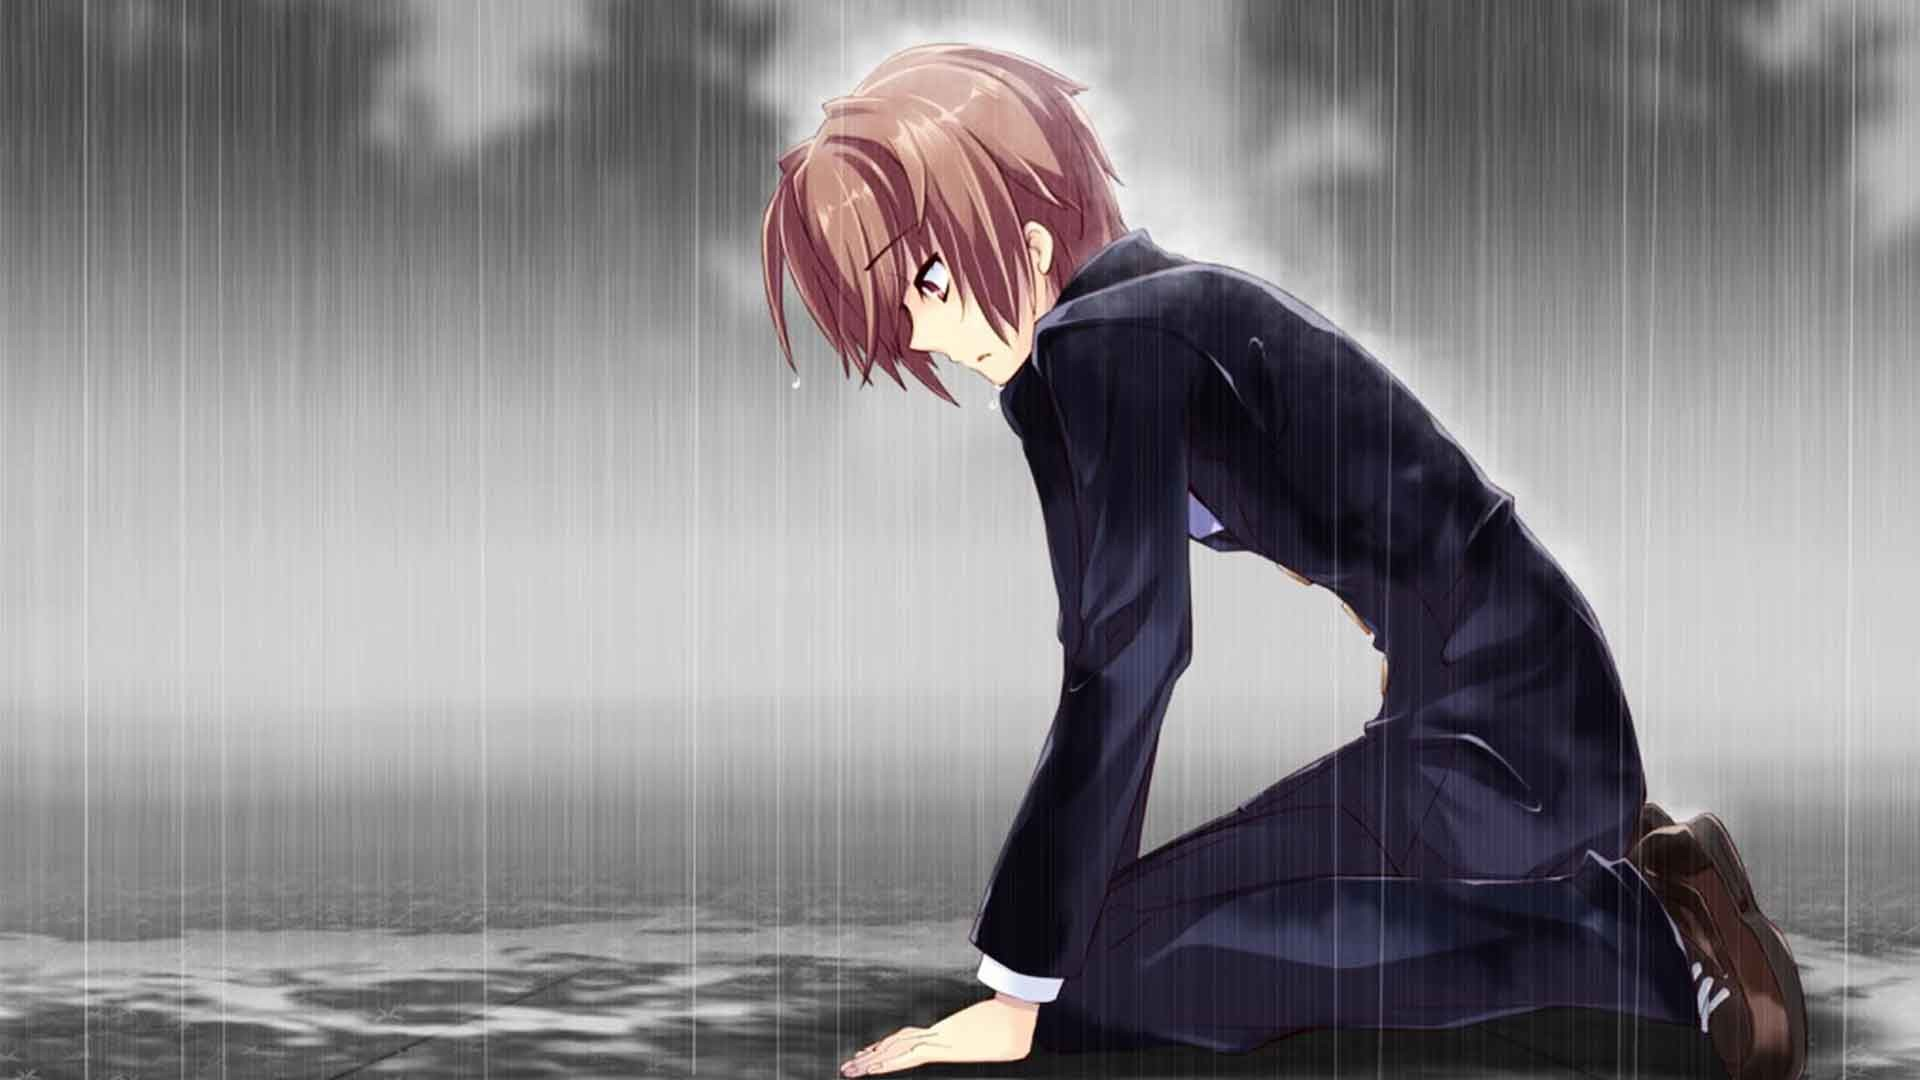 Sad Boy Wallpapers 2018 62 Background Pictures